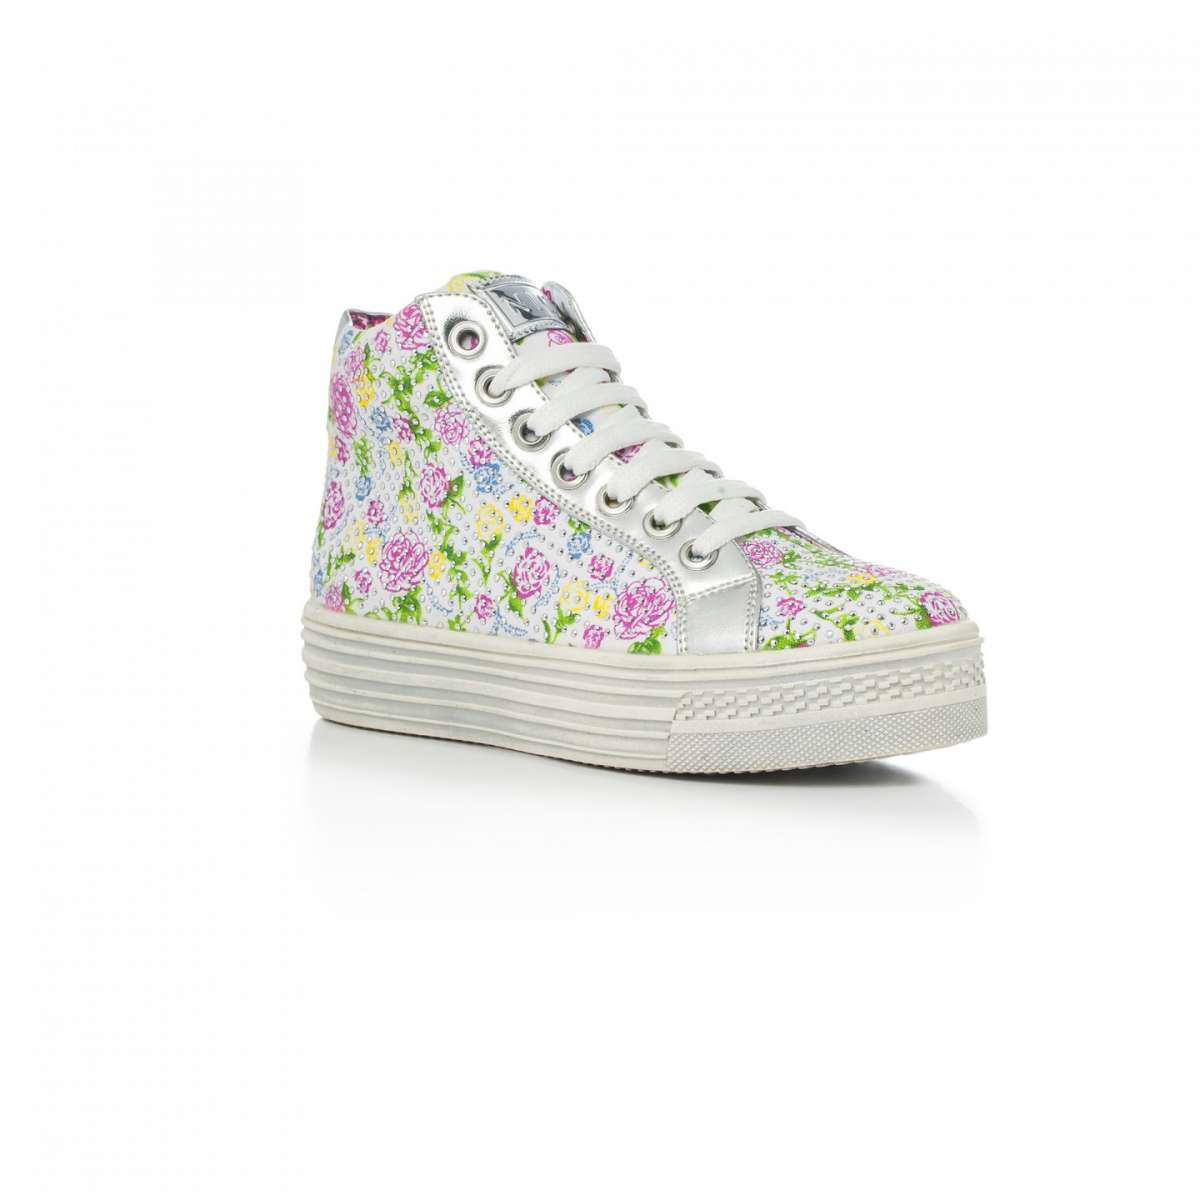 Sneakers con stampa Pittarosso